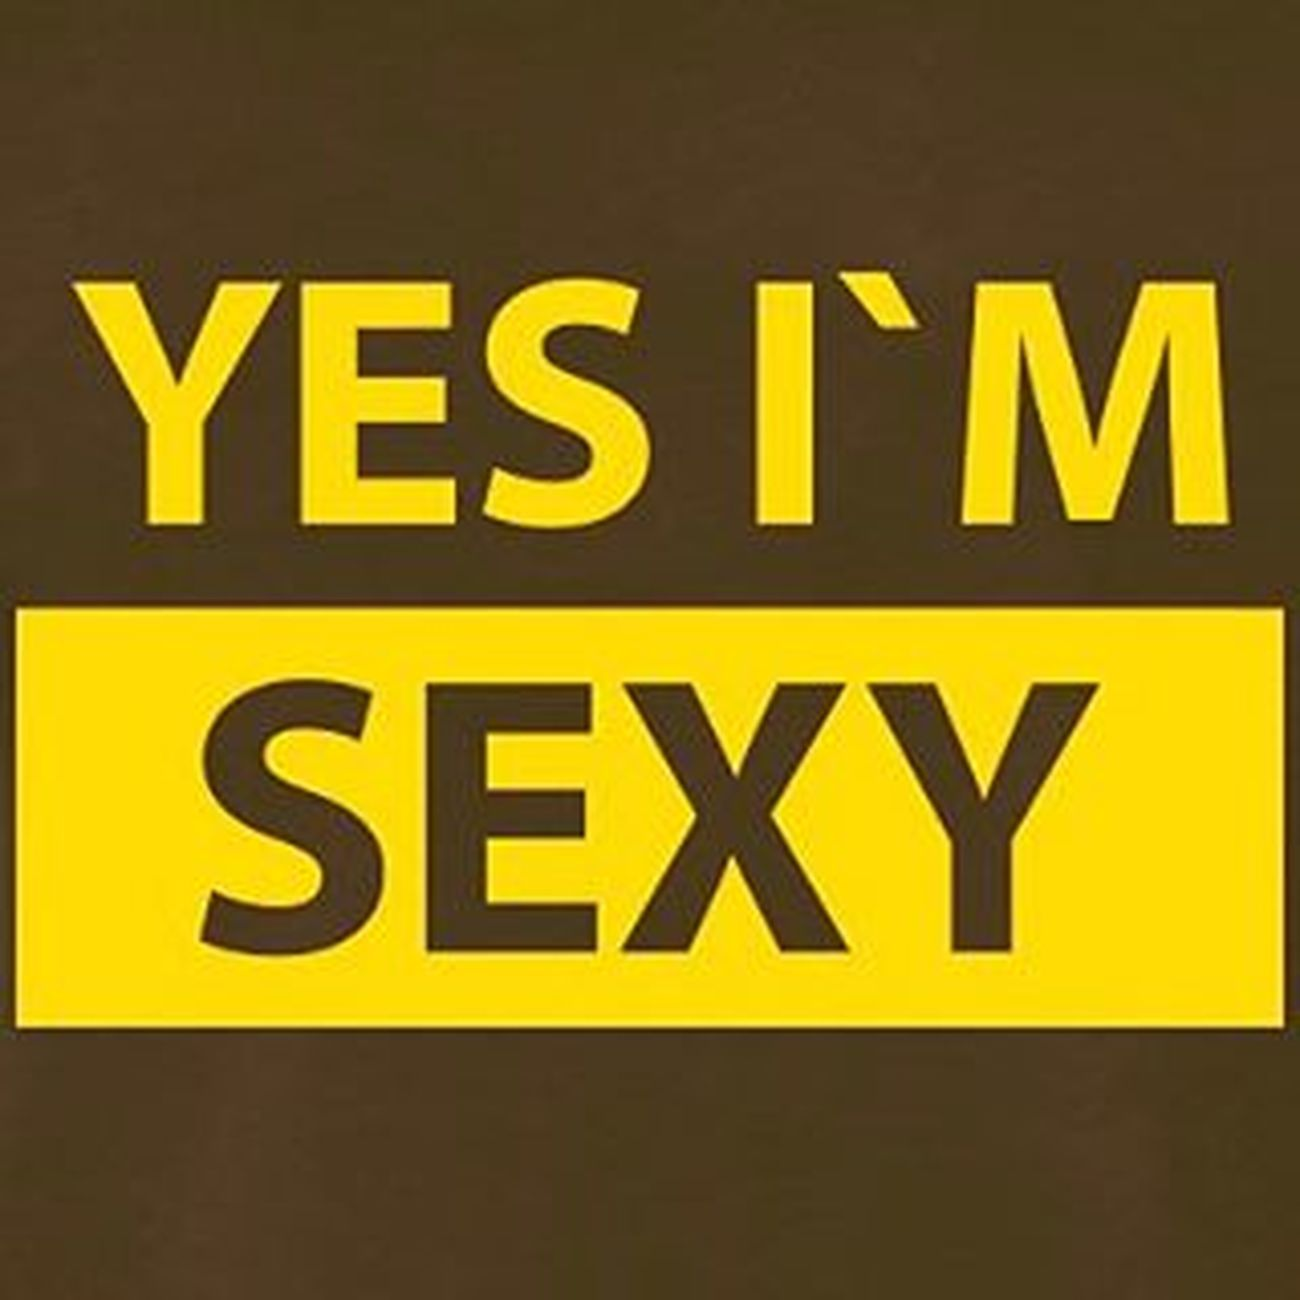 Yes Iam Sexy Yesiamsexy